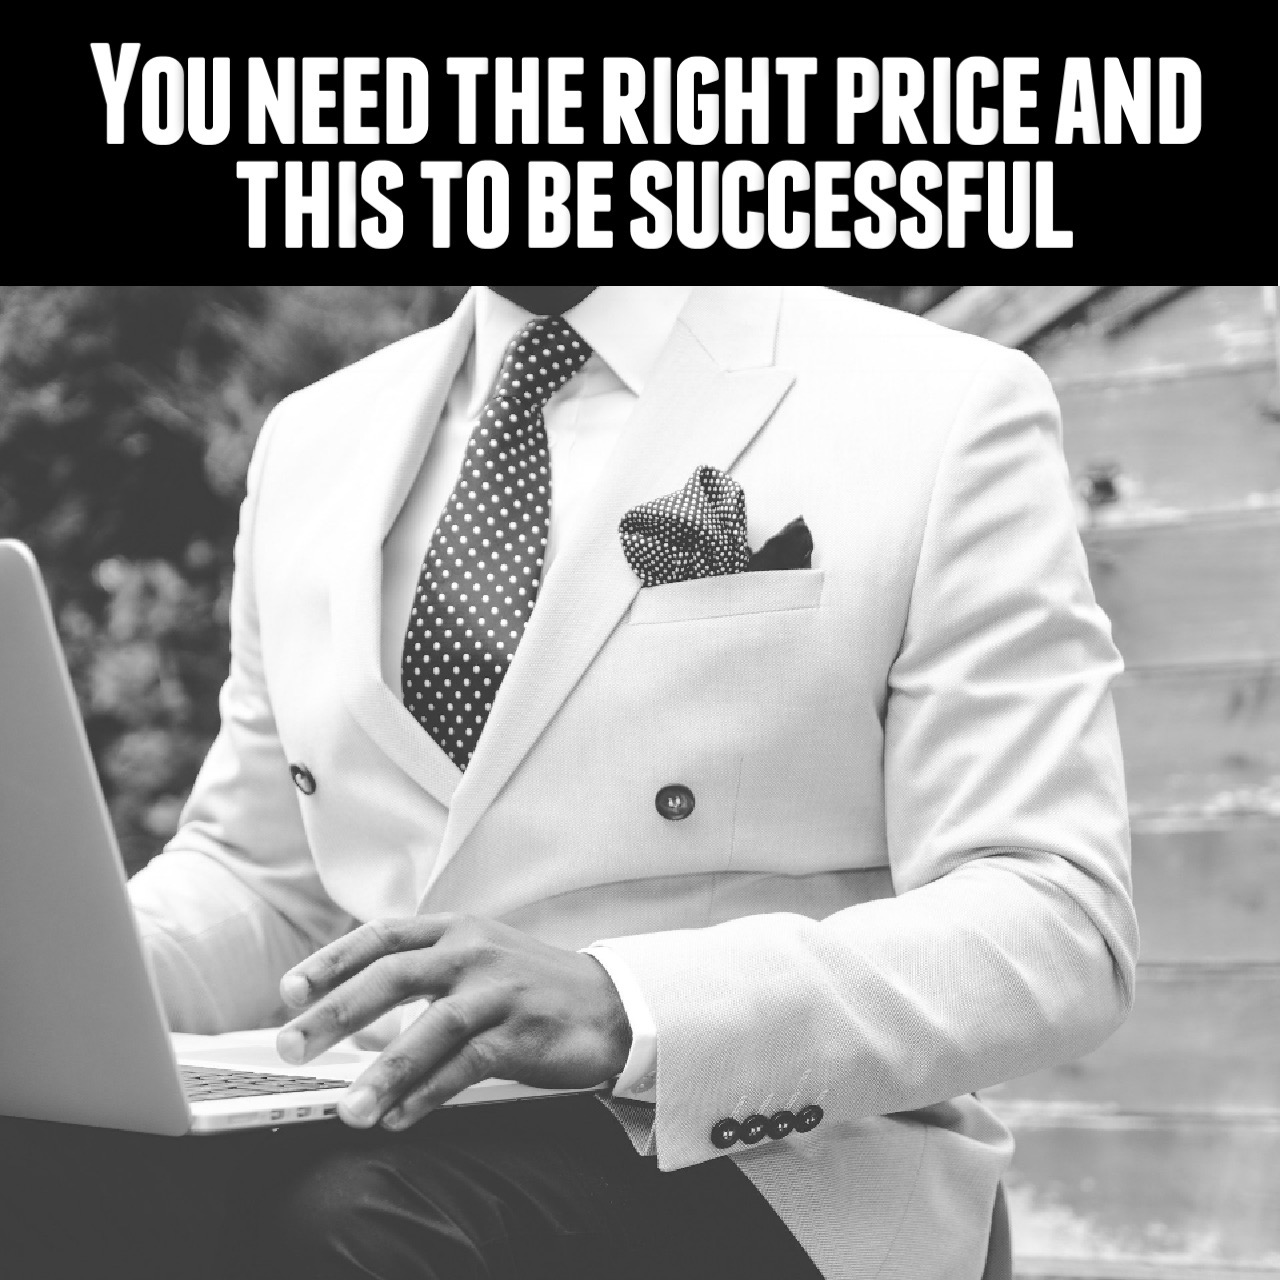 You need This to be successful